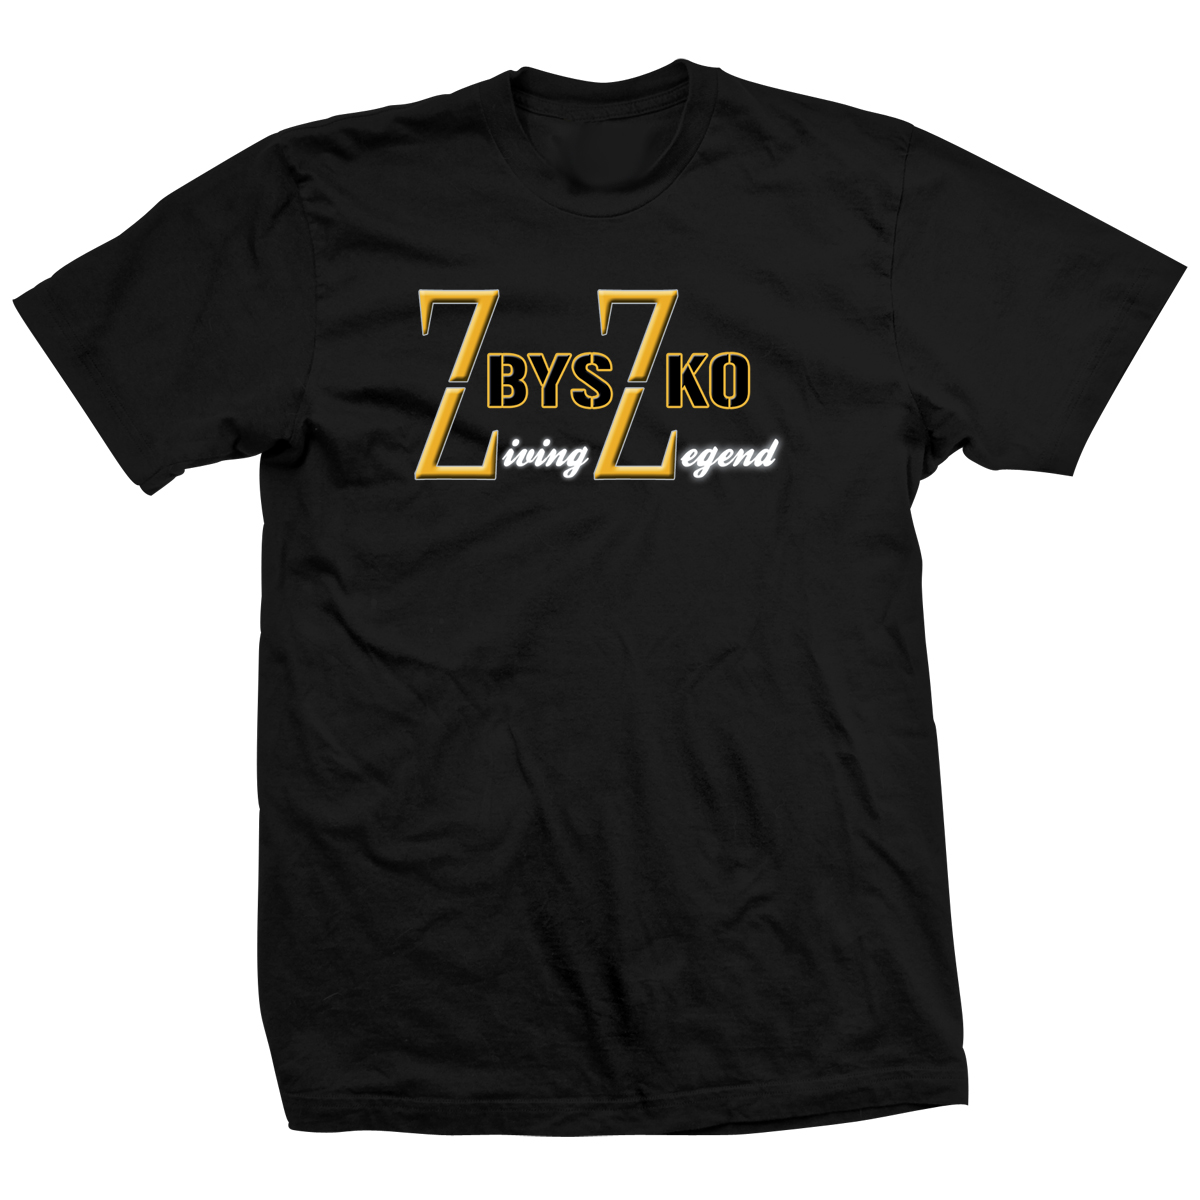 Larry Zbysko Living Legend T-shirt